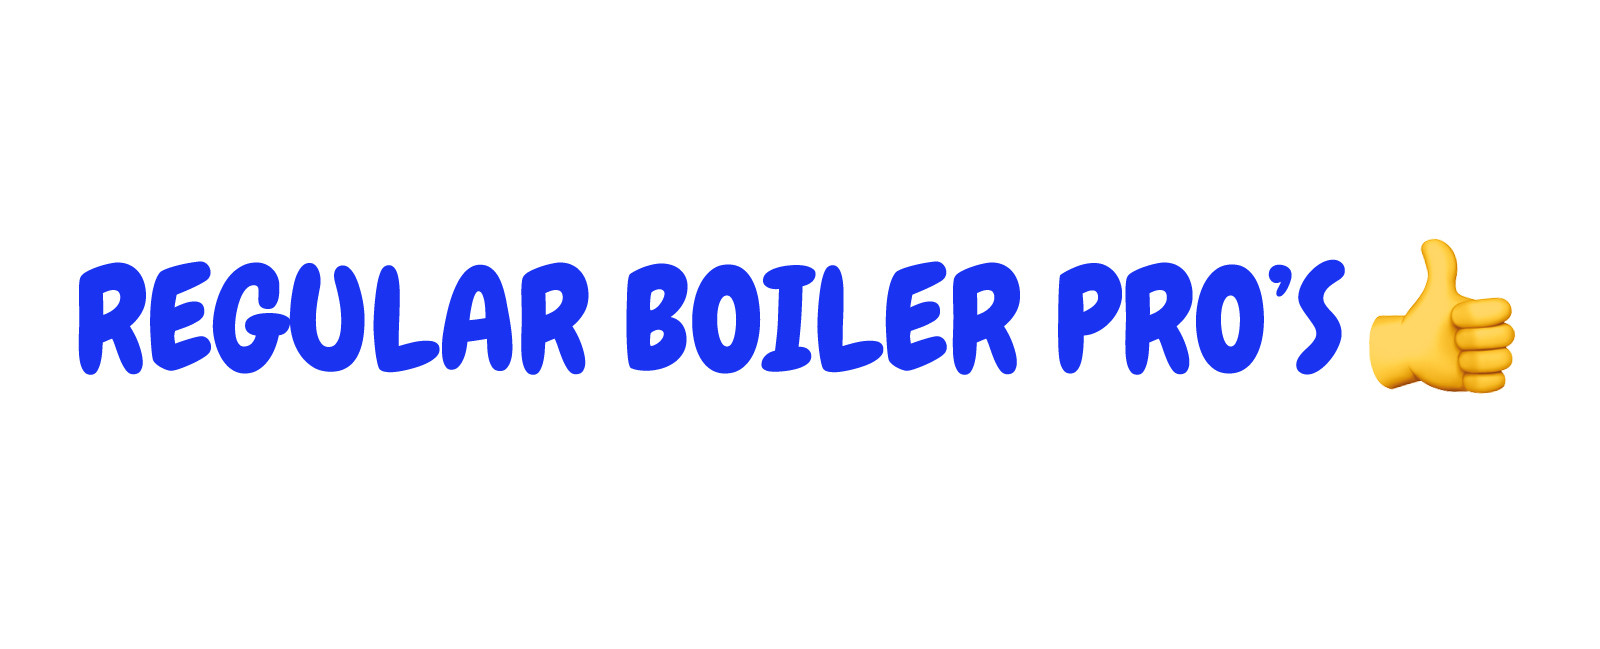 Regular Boiler Pros